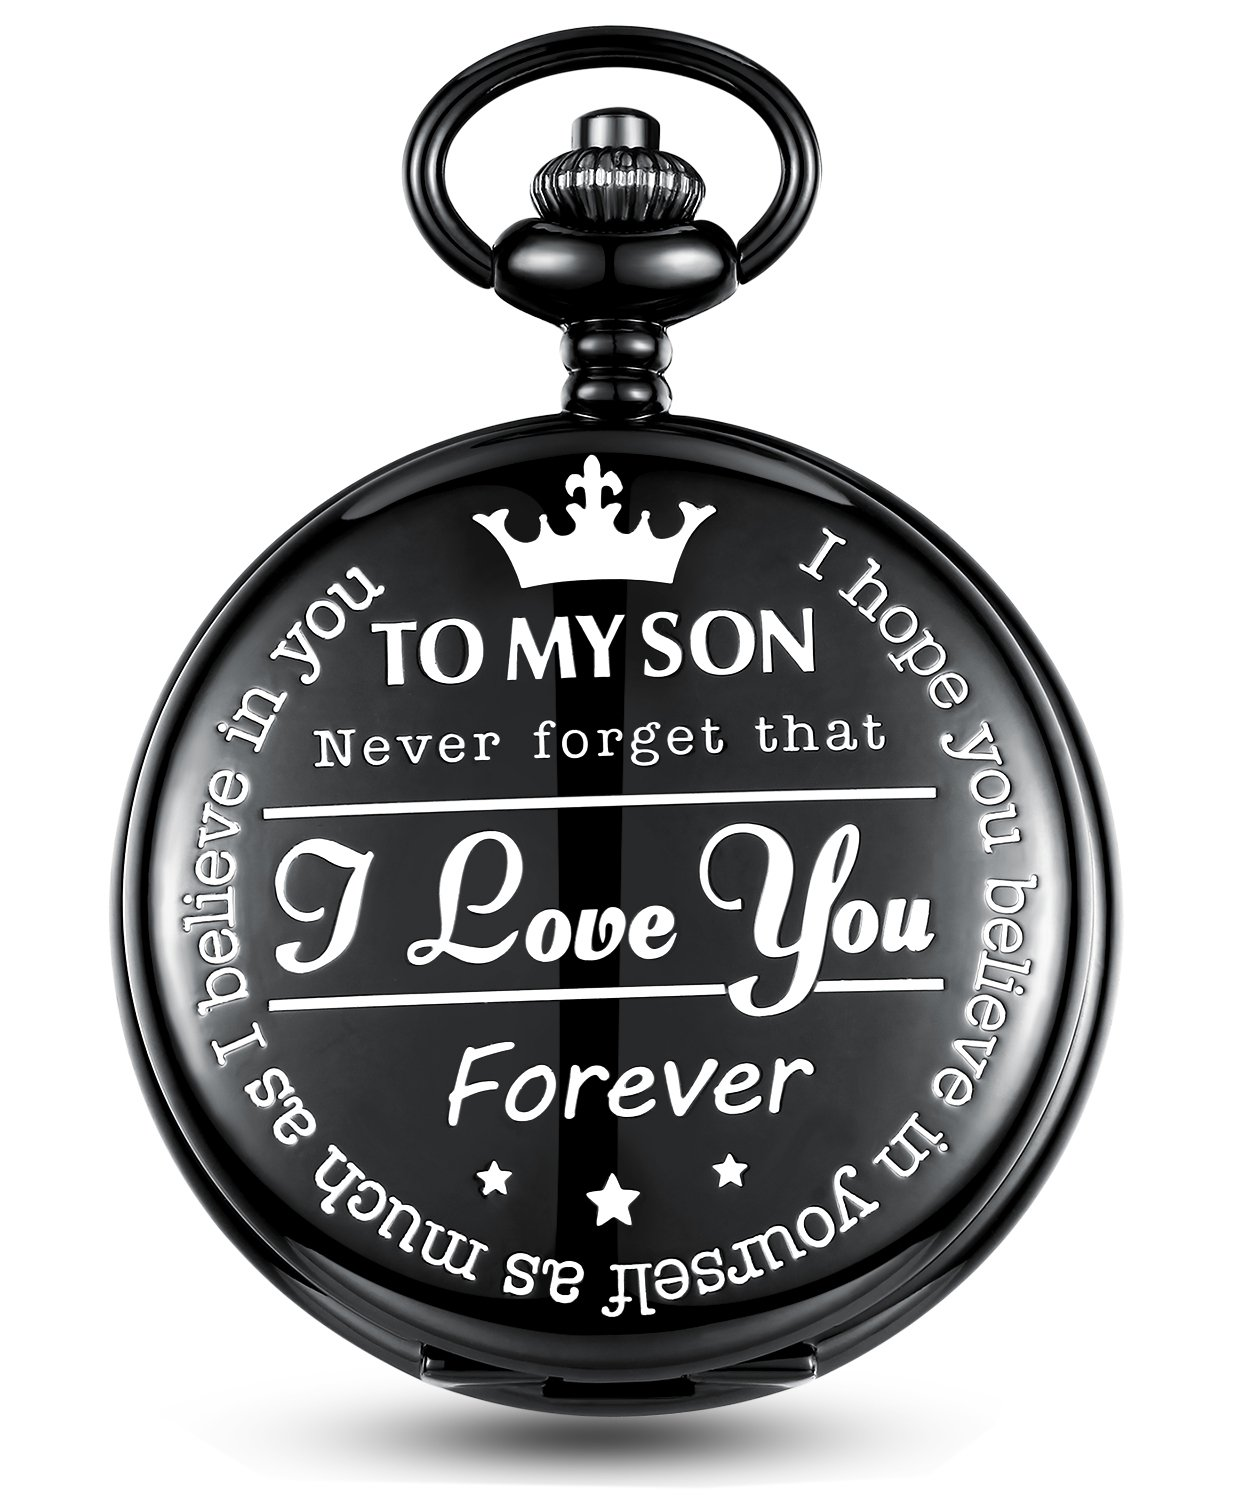 Jechin Men's Funny Engraving Black Stainless Steel Pocket Watch with Gift Box - Souvenir from a Mom to a Son